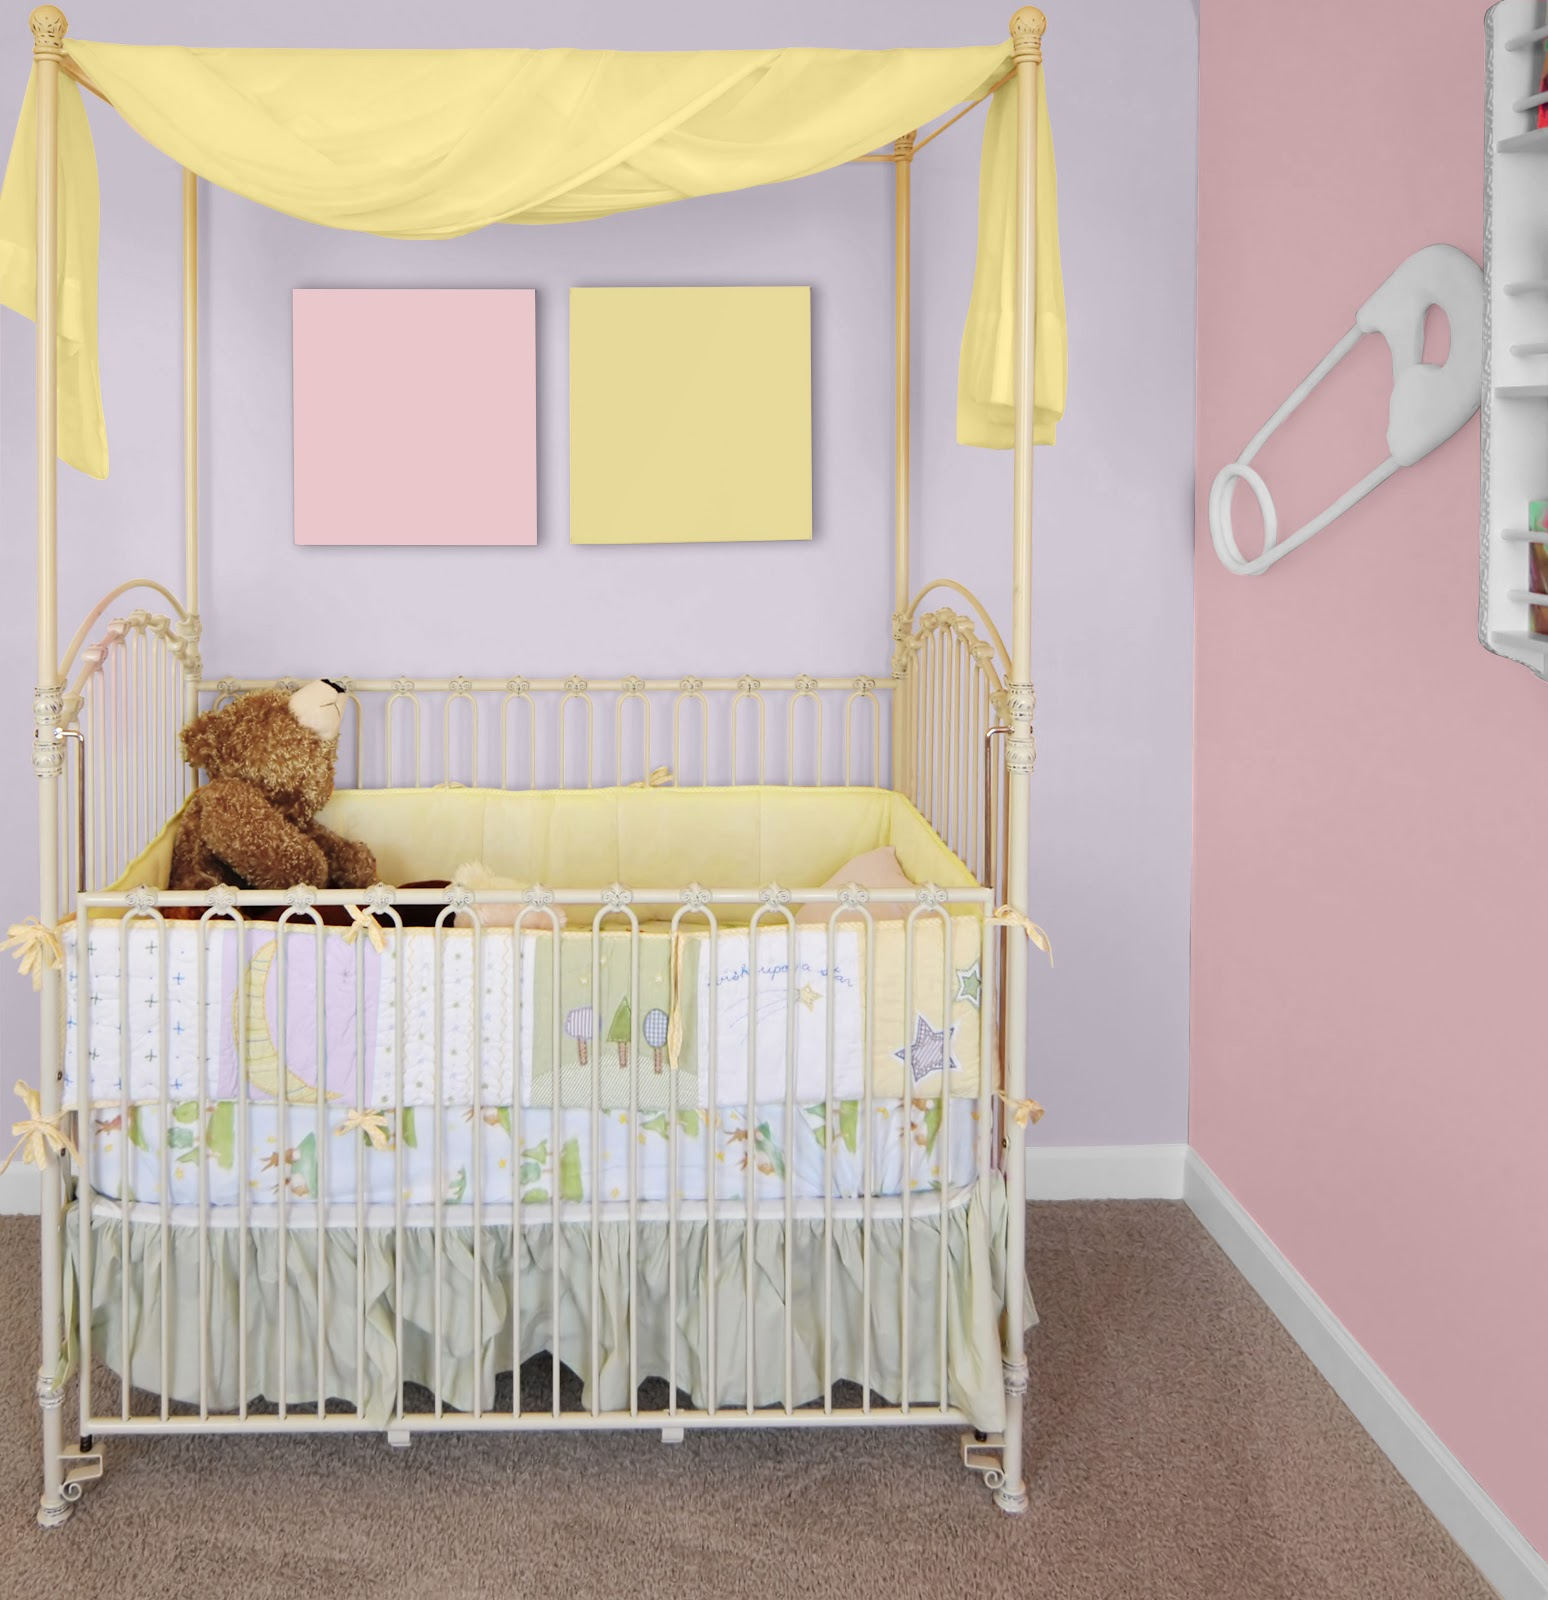 Bubblegum Pink and Iced Purple & Top 10 Baby Nursery Room Colors (And Decorating Ideas)